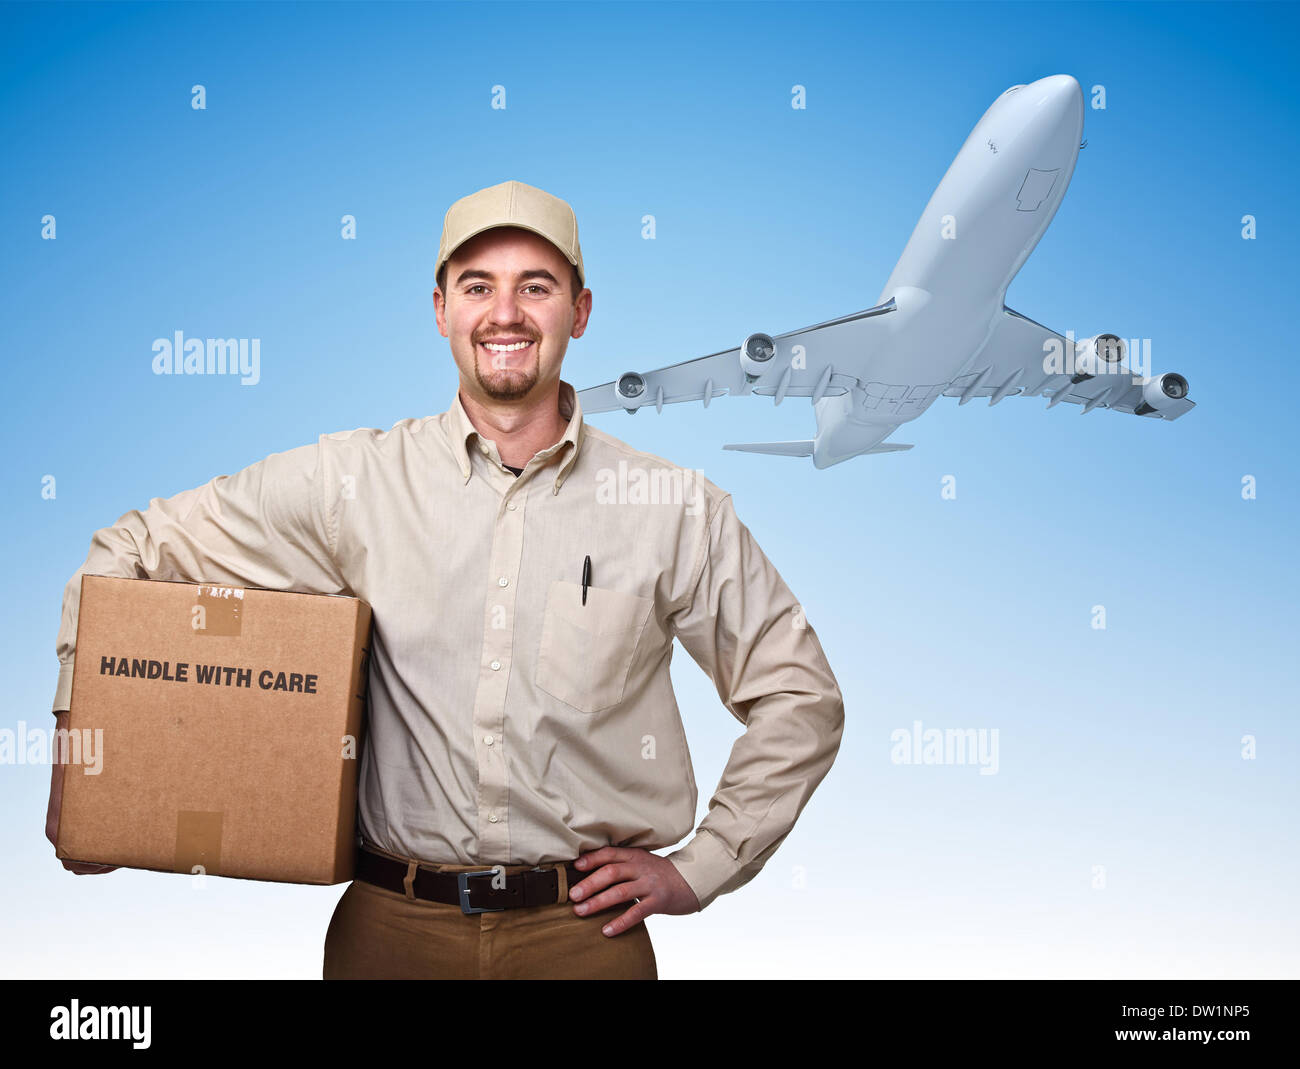 fast air delivery Stock Photo